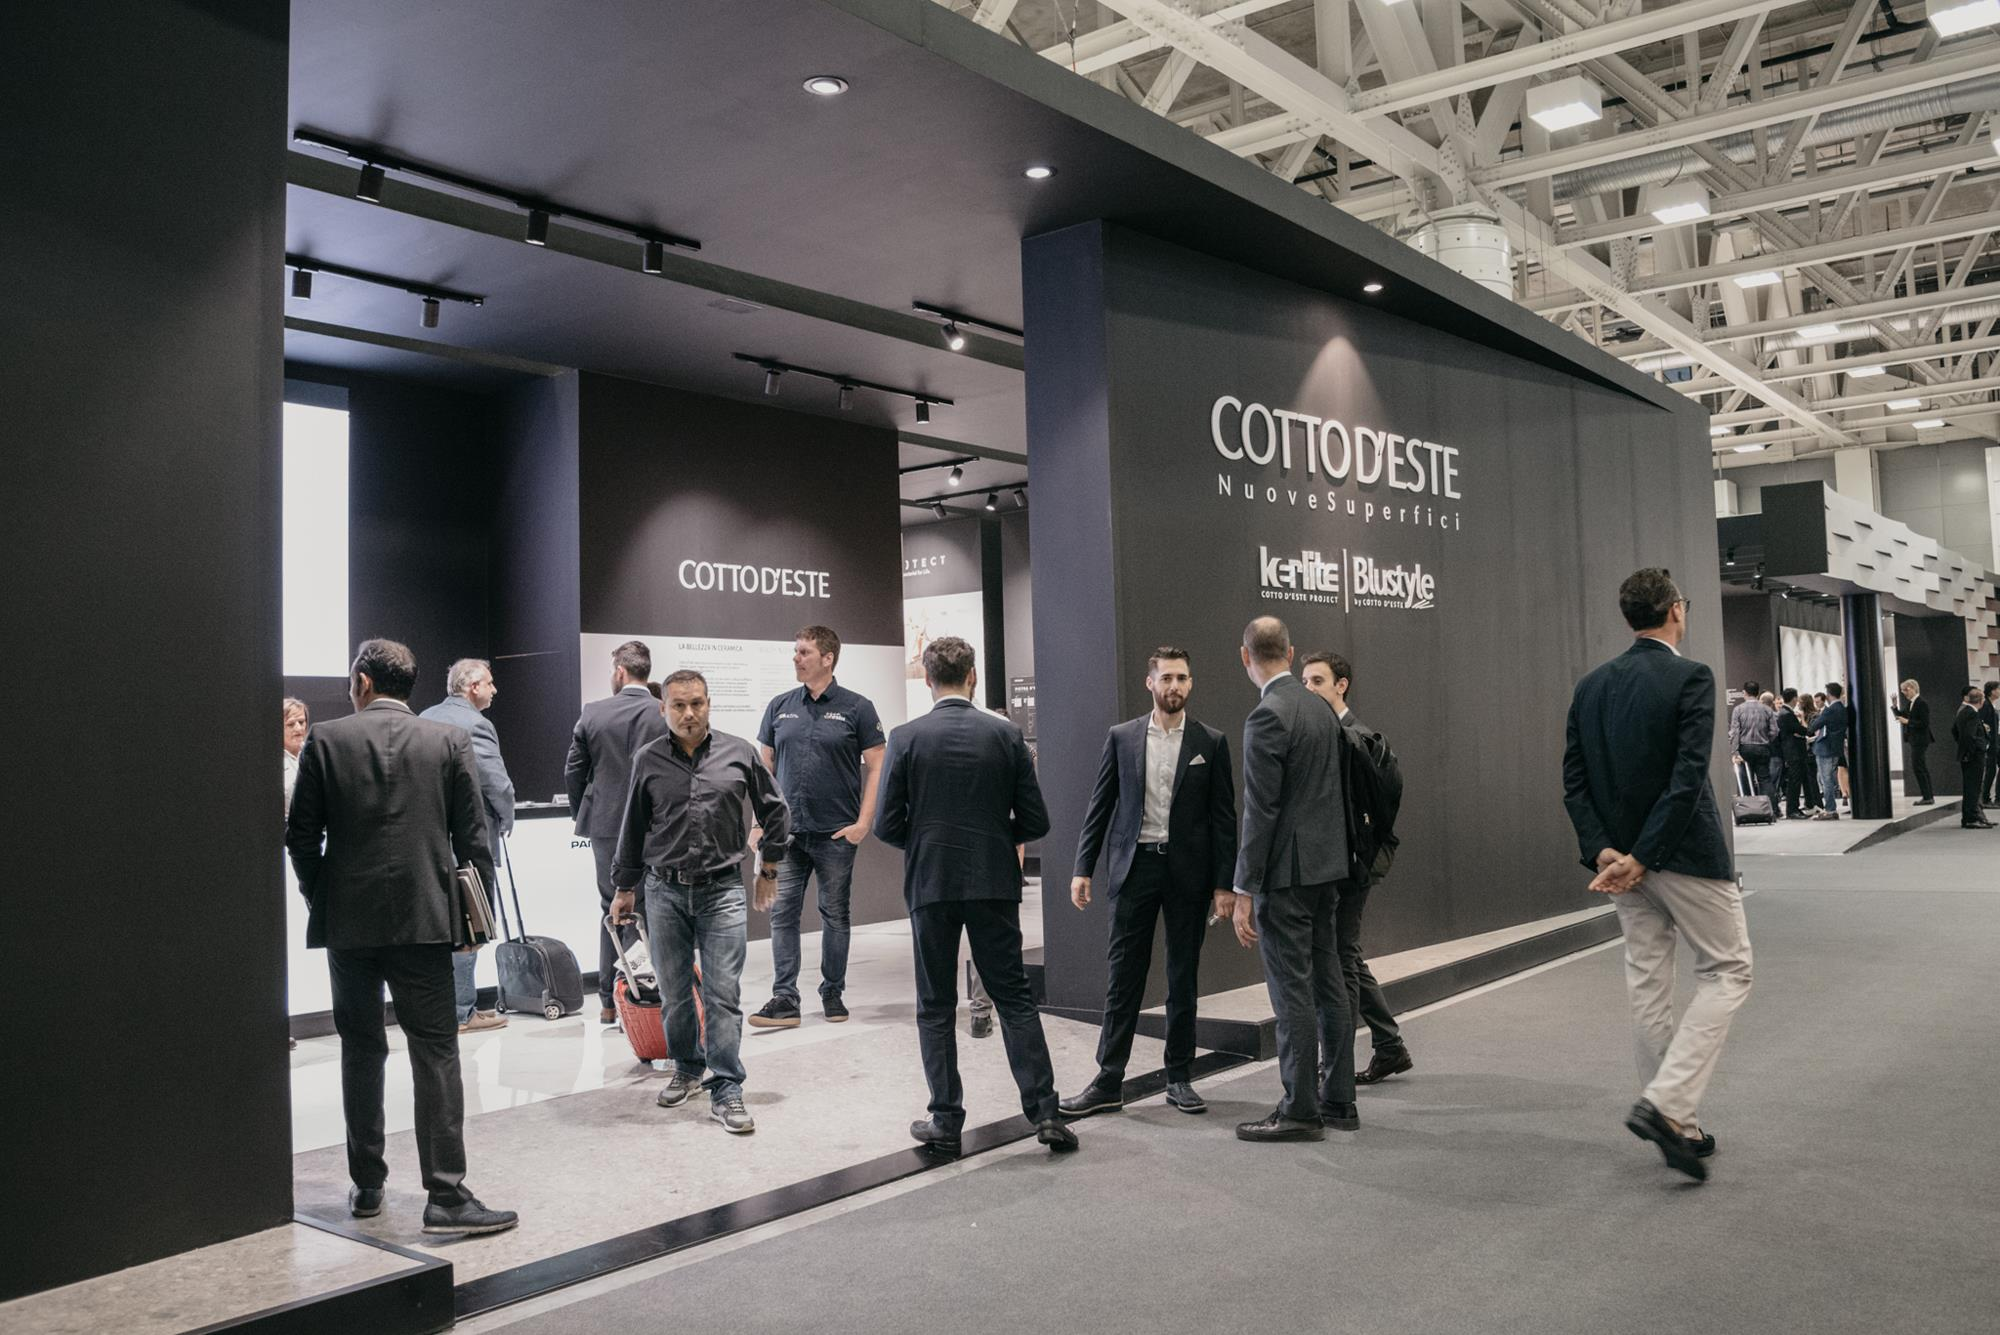 Cersaie 2018, Cotto d'Este takes ceramics to a new level: Photo 29